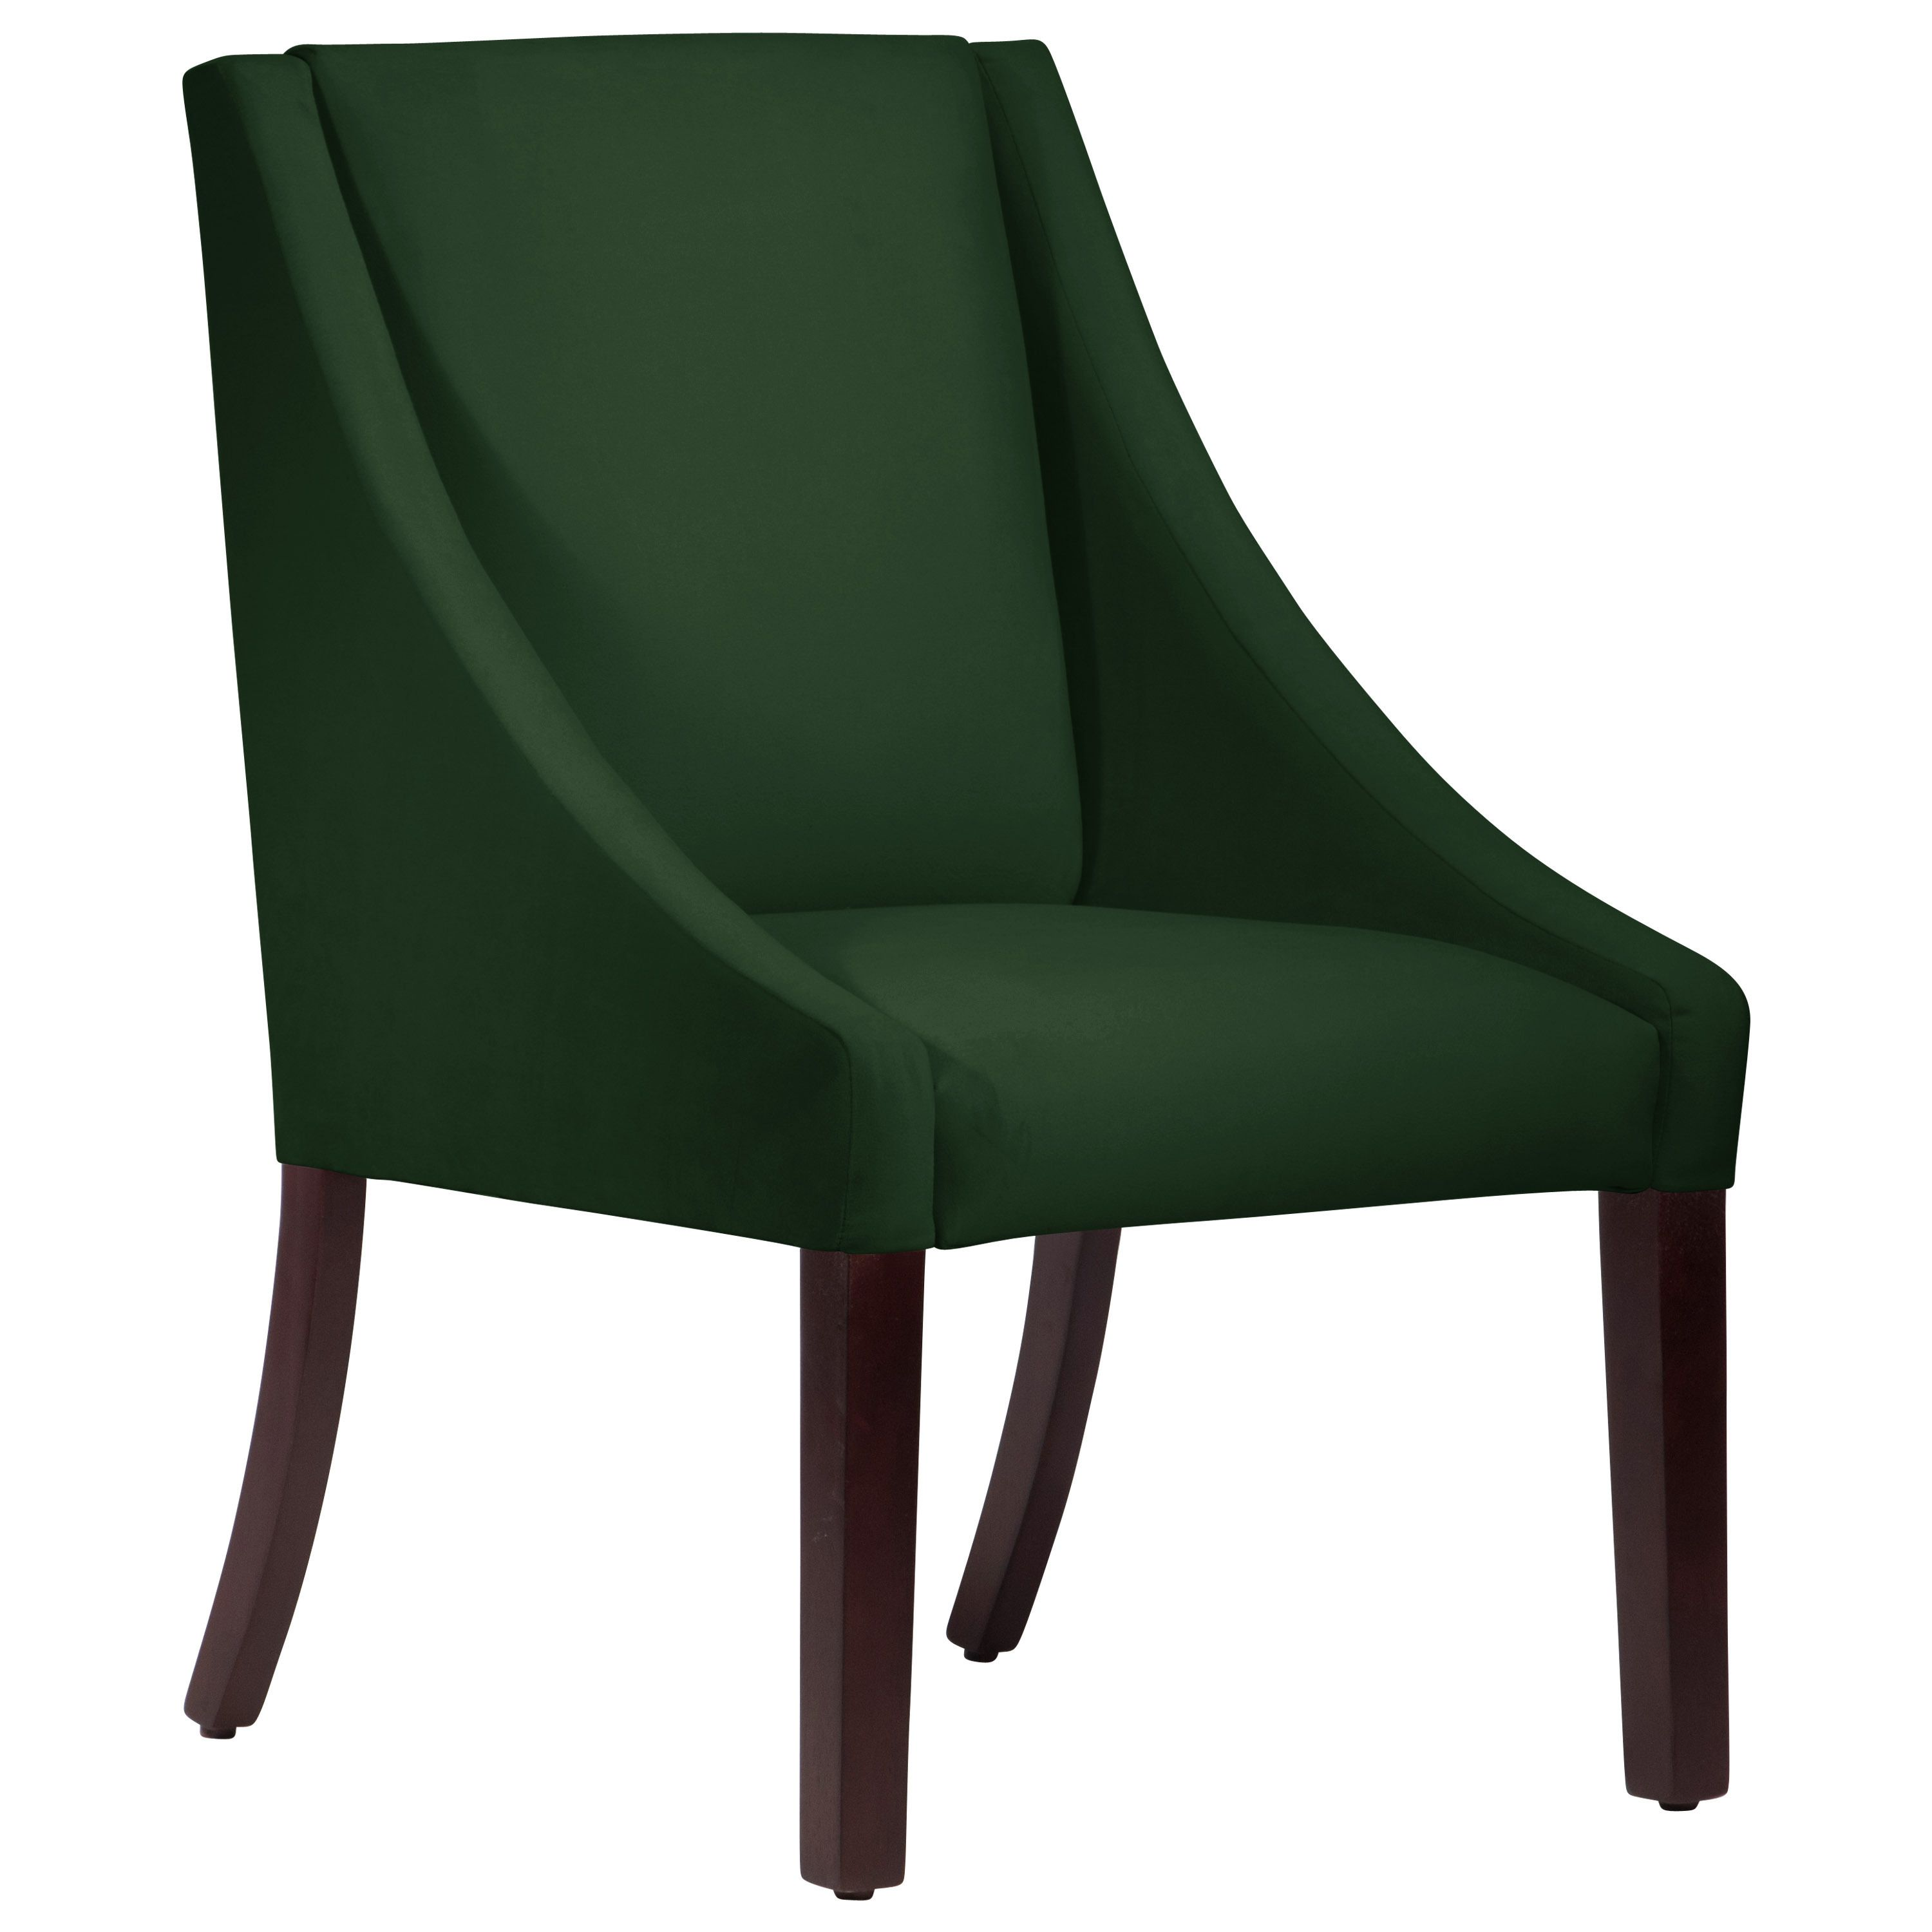 Skyline Furniture Swoop Fauxmo Emerald Upholstered Dining Chair